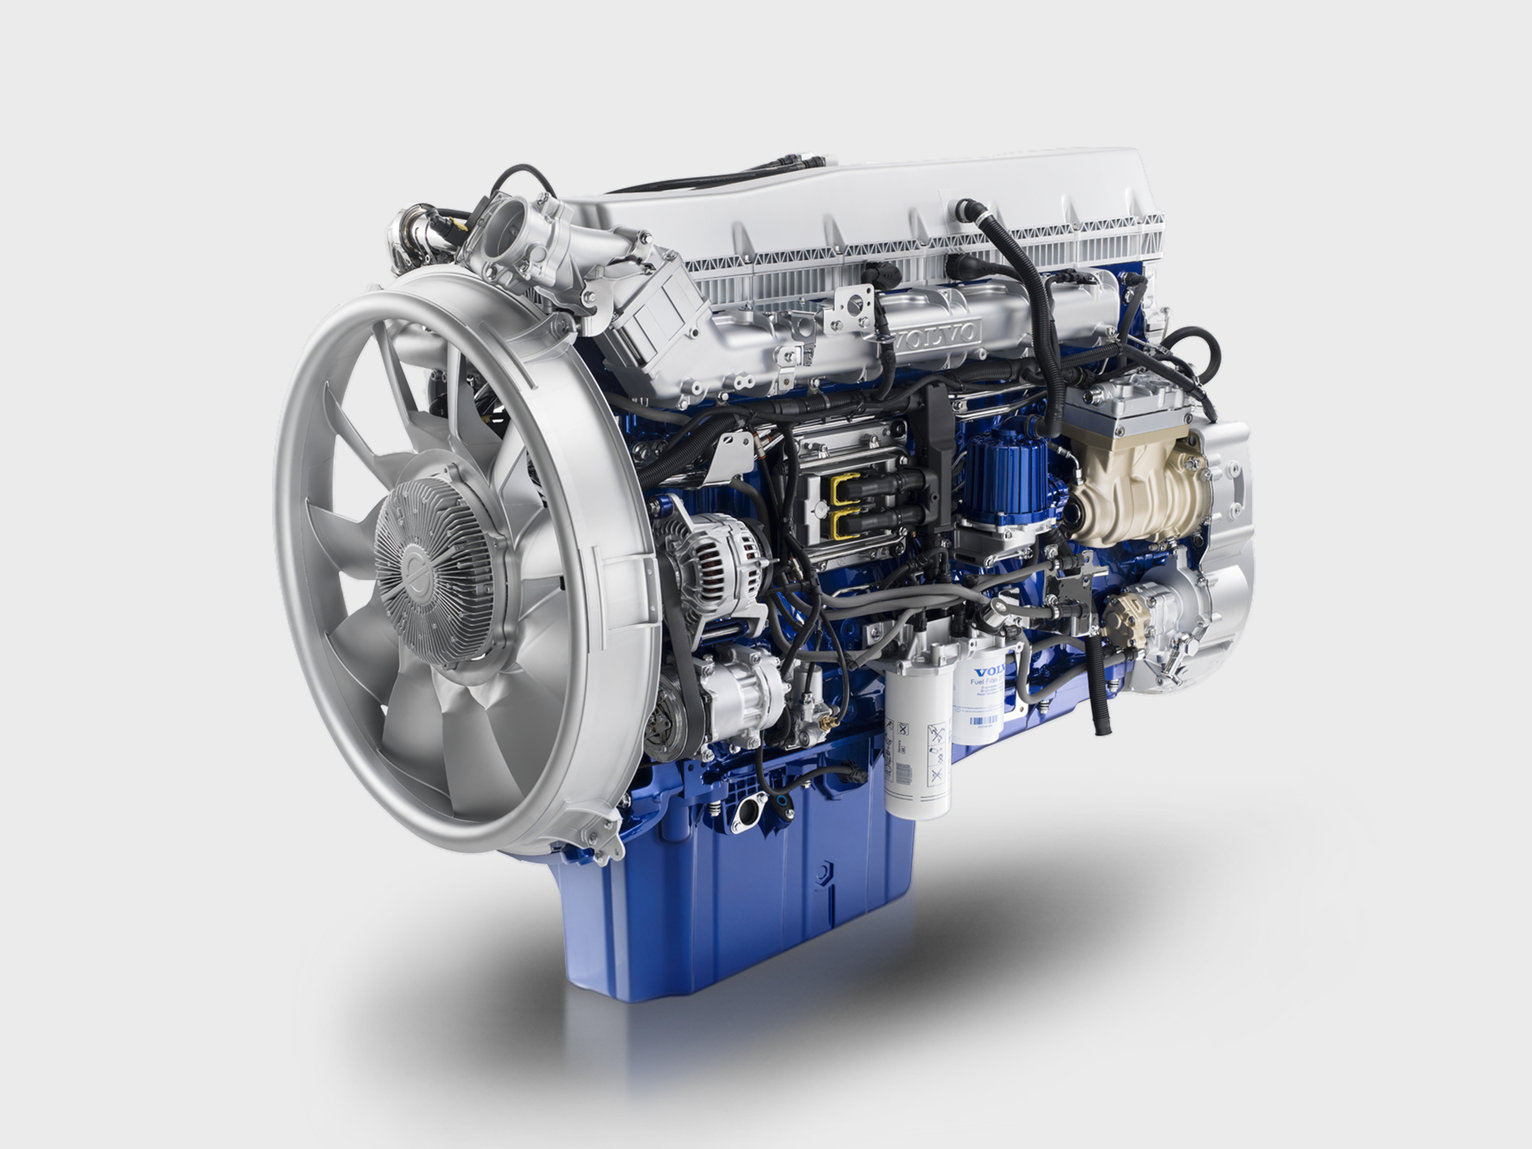 The new Volvo FH16 VOLVO DIESEL ENGINES